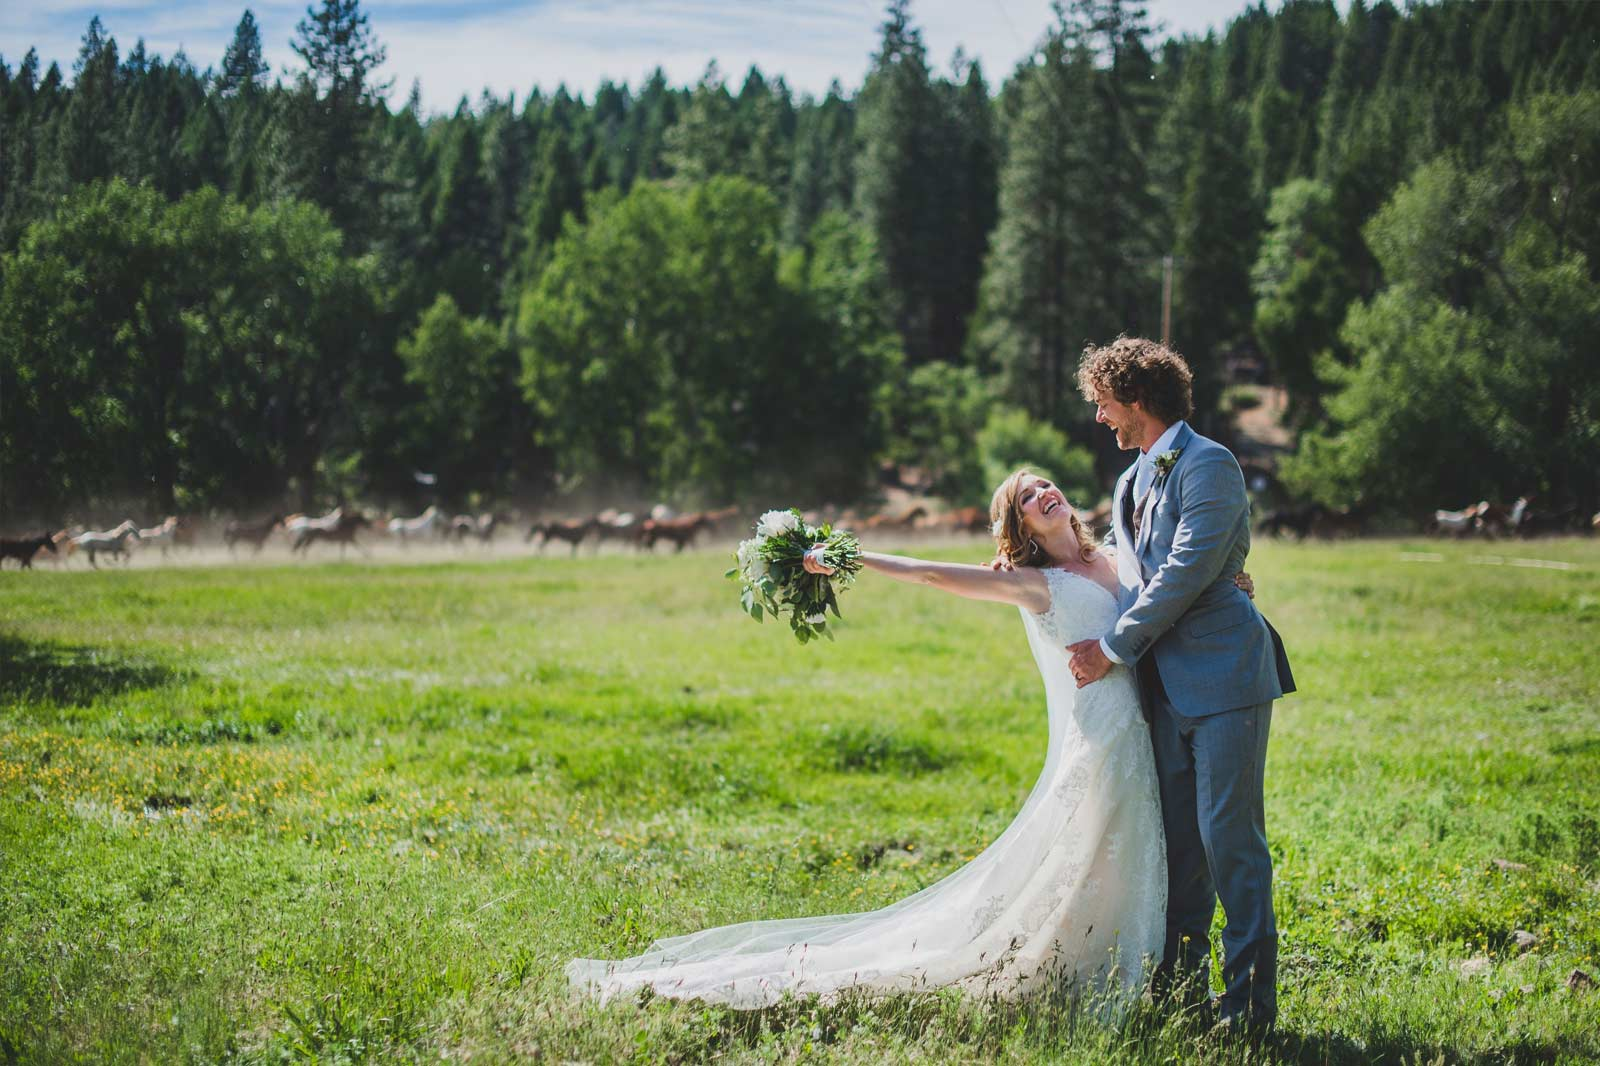 A bride and groom posing for photos outside on the green grass with tall pine trees and horses in the background